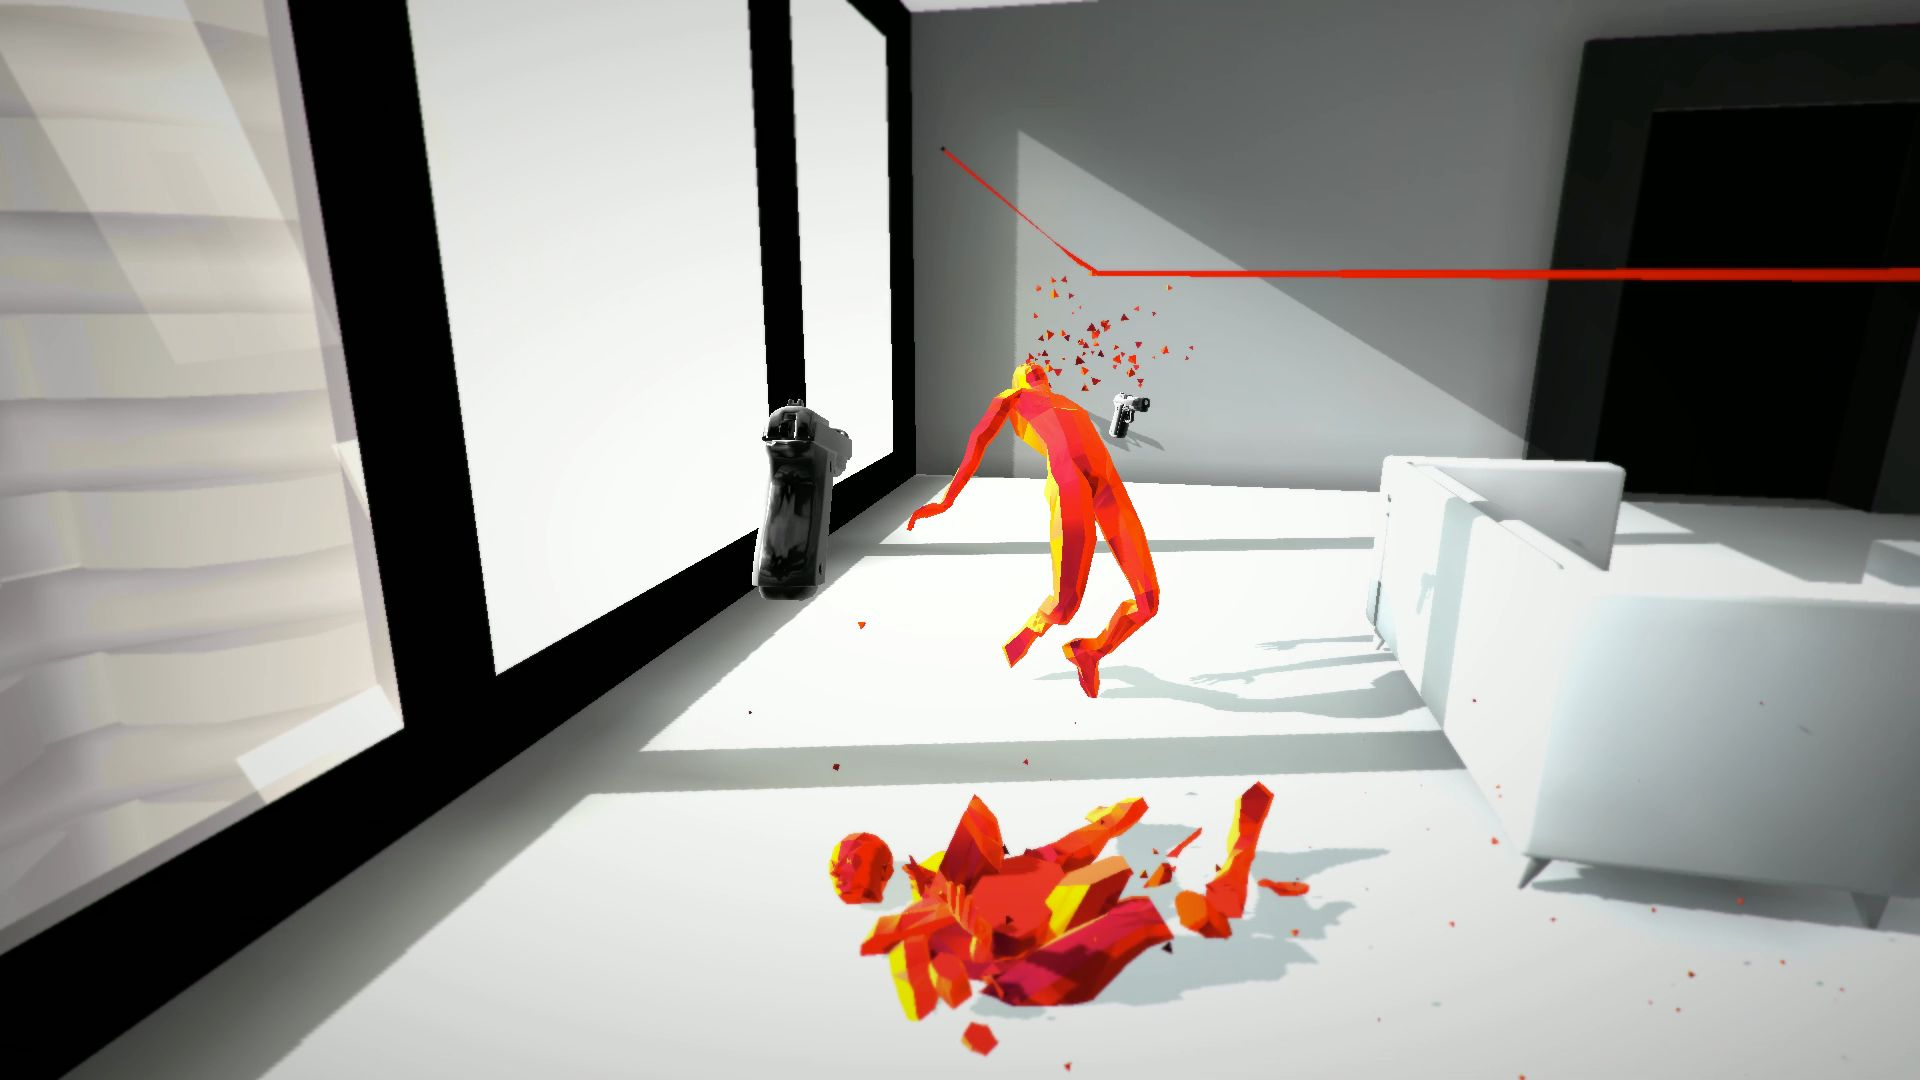 SUPERHOT Background